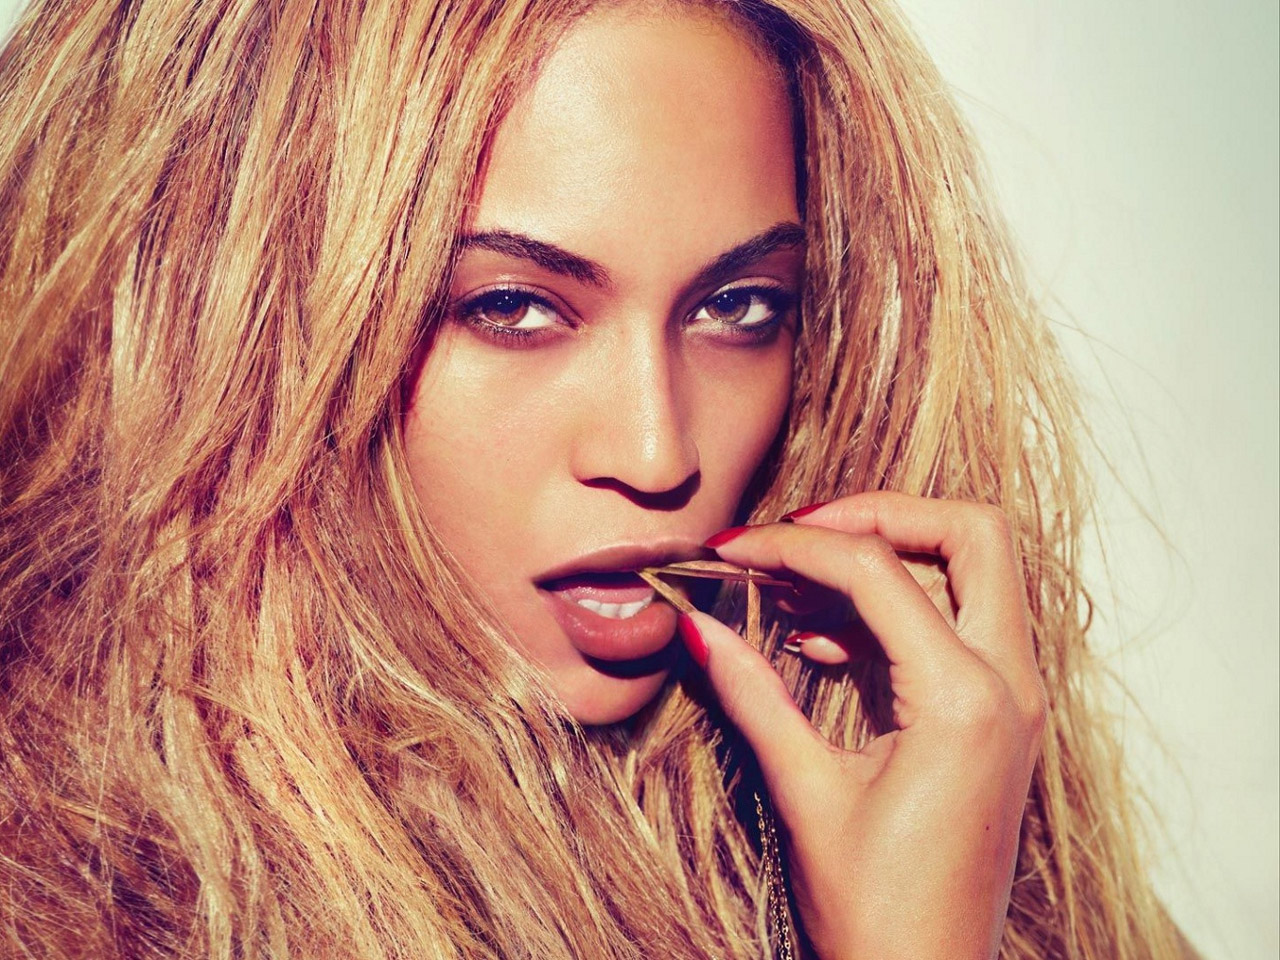 Beyonce Knowles HQ Wallpapers | Beyonce Knowles Wallpapers - 25036 ... Beyonce Knowles